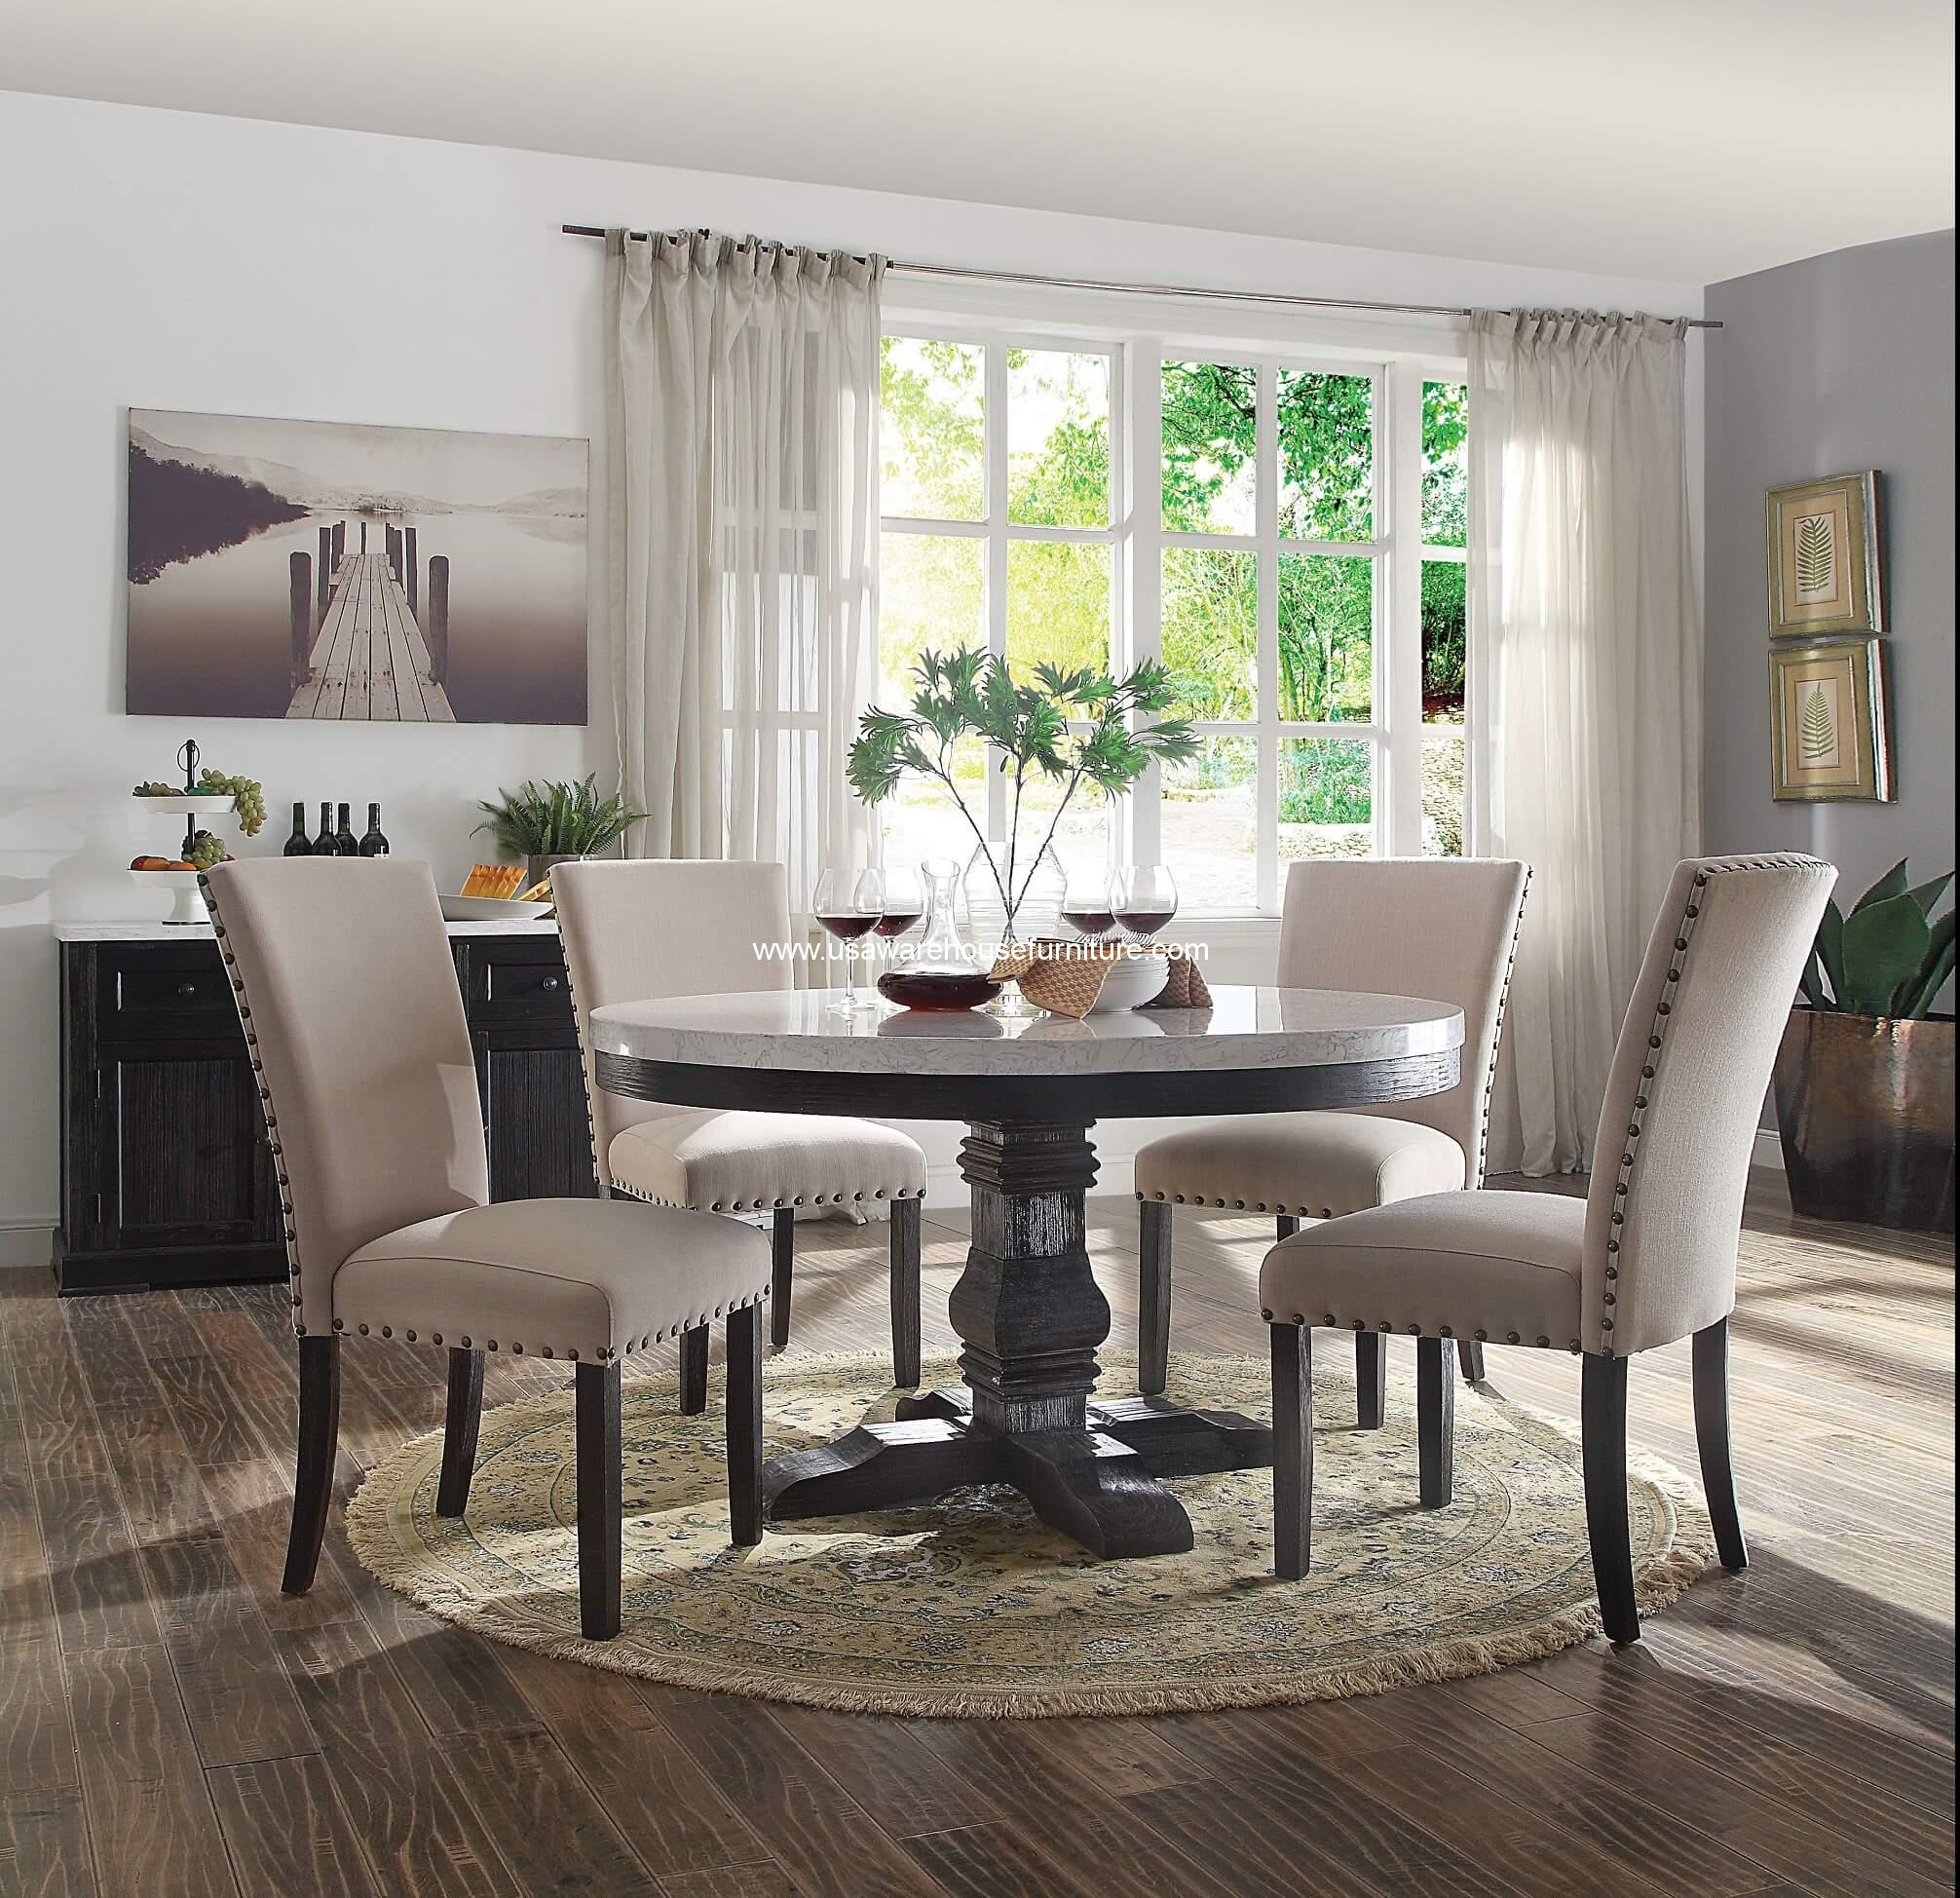 Marble Top Dining Table For Living Room Furniture